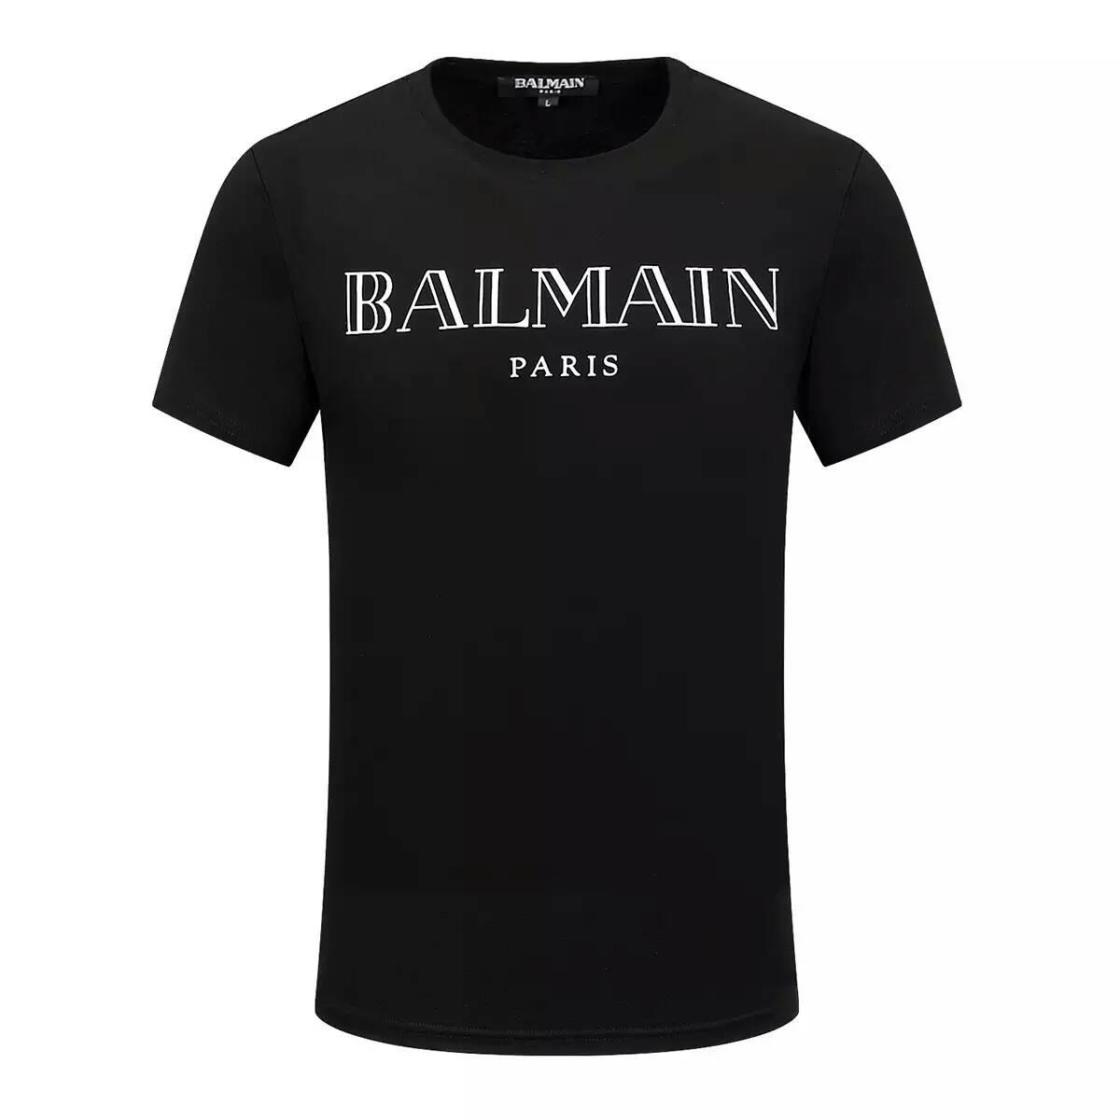 Buy Balmain T-Shirt - Men Balmain T-Shirts - SI. Men - Balmain T-Shirt - Men Balmain T-Shirts - SI. % Cotton DETAILS jersey, solid colour, round collar, short sleeves, print, no pockets ARE YOU LOOKING FOR THE PERFECT SIZE FOR YOU?